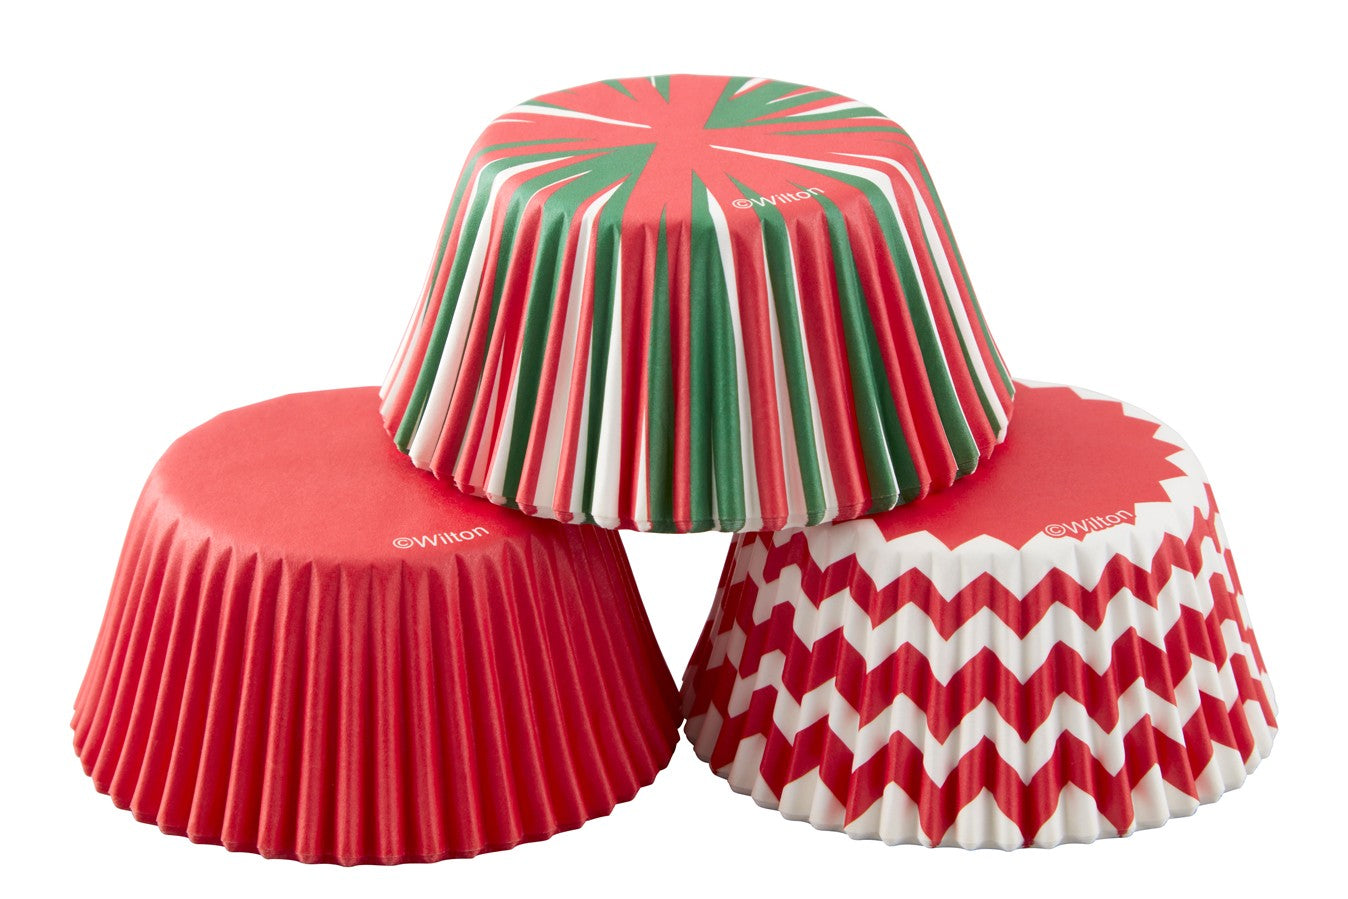 Wilton - Red, Green and White - Pack of 75